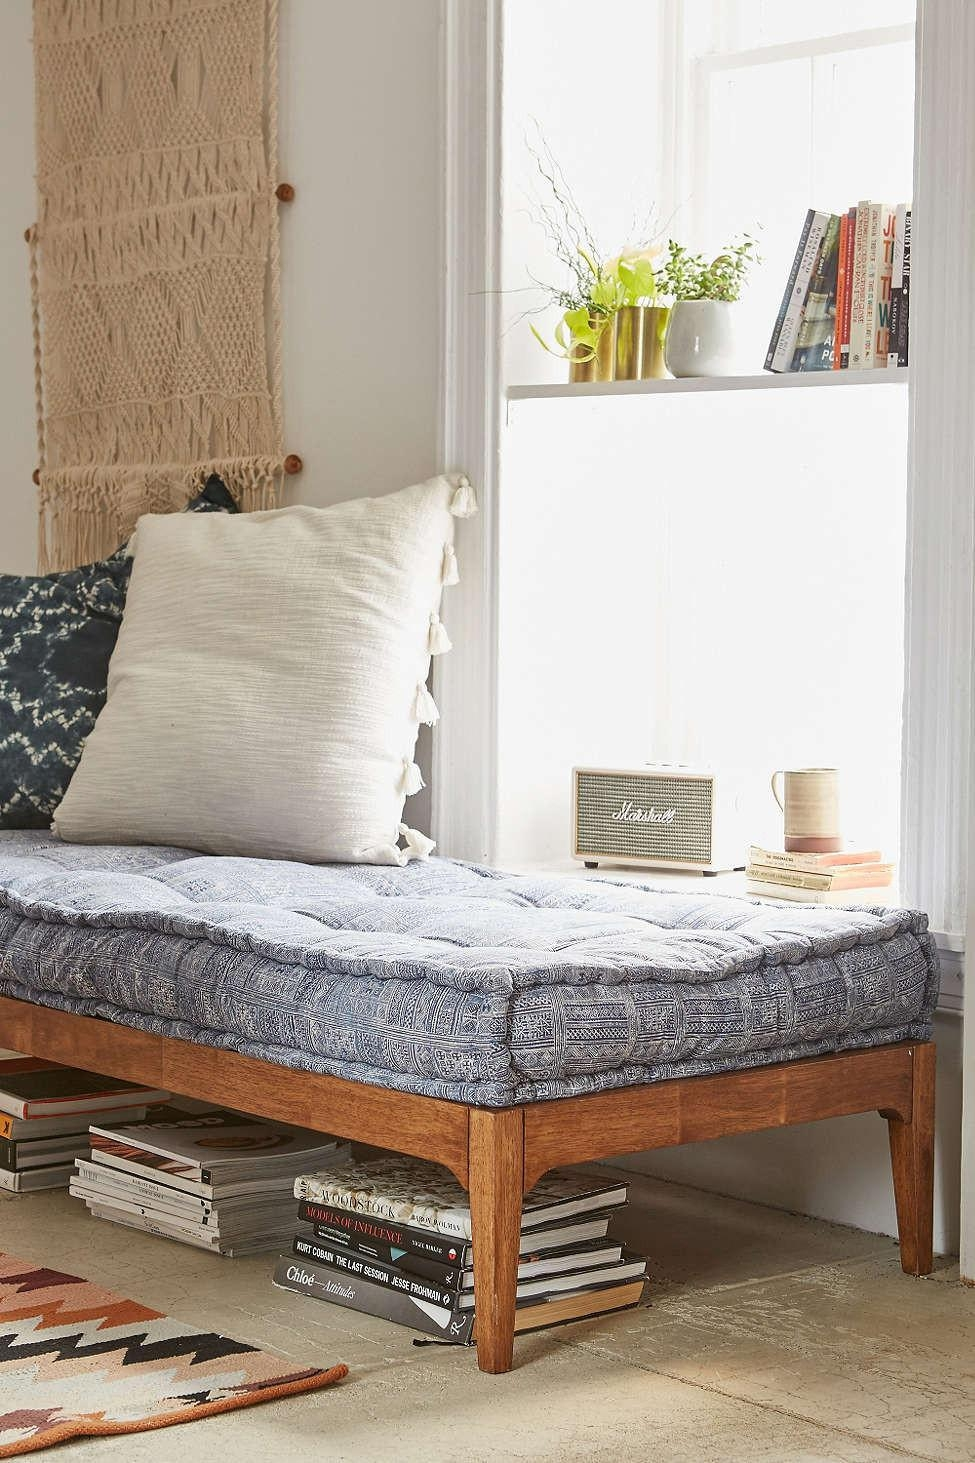 Can You Replace A Sofa With A Daybed? – Decorating – Lonny With Regard To Sofa Day Beds (View 8 of 20)